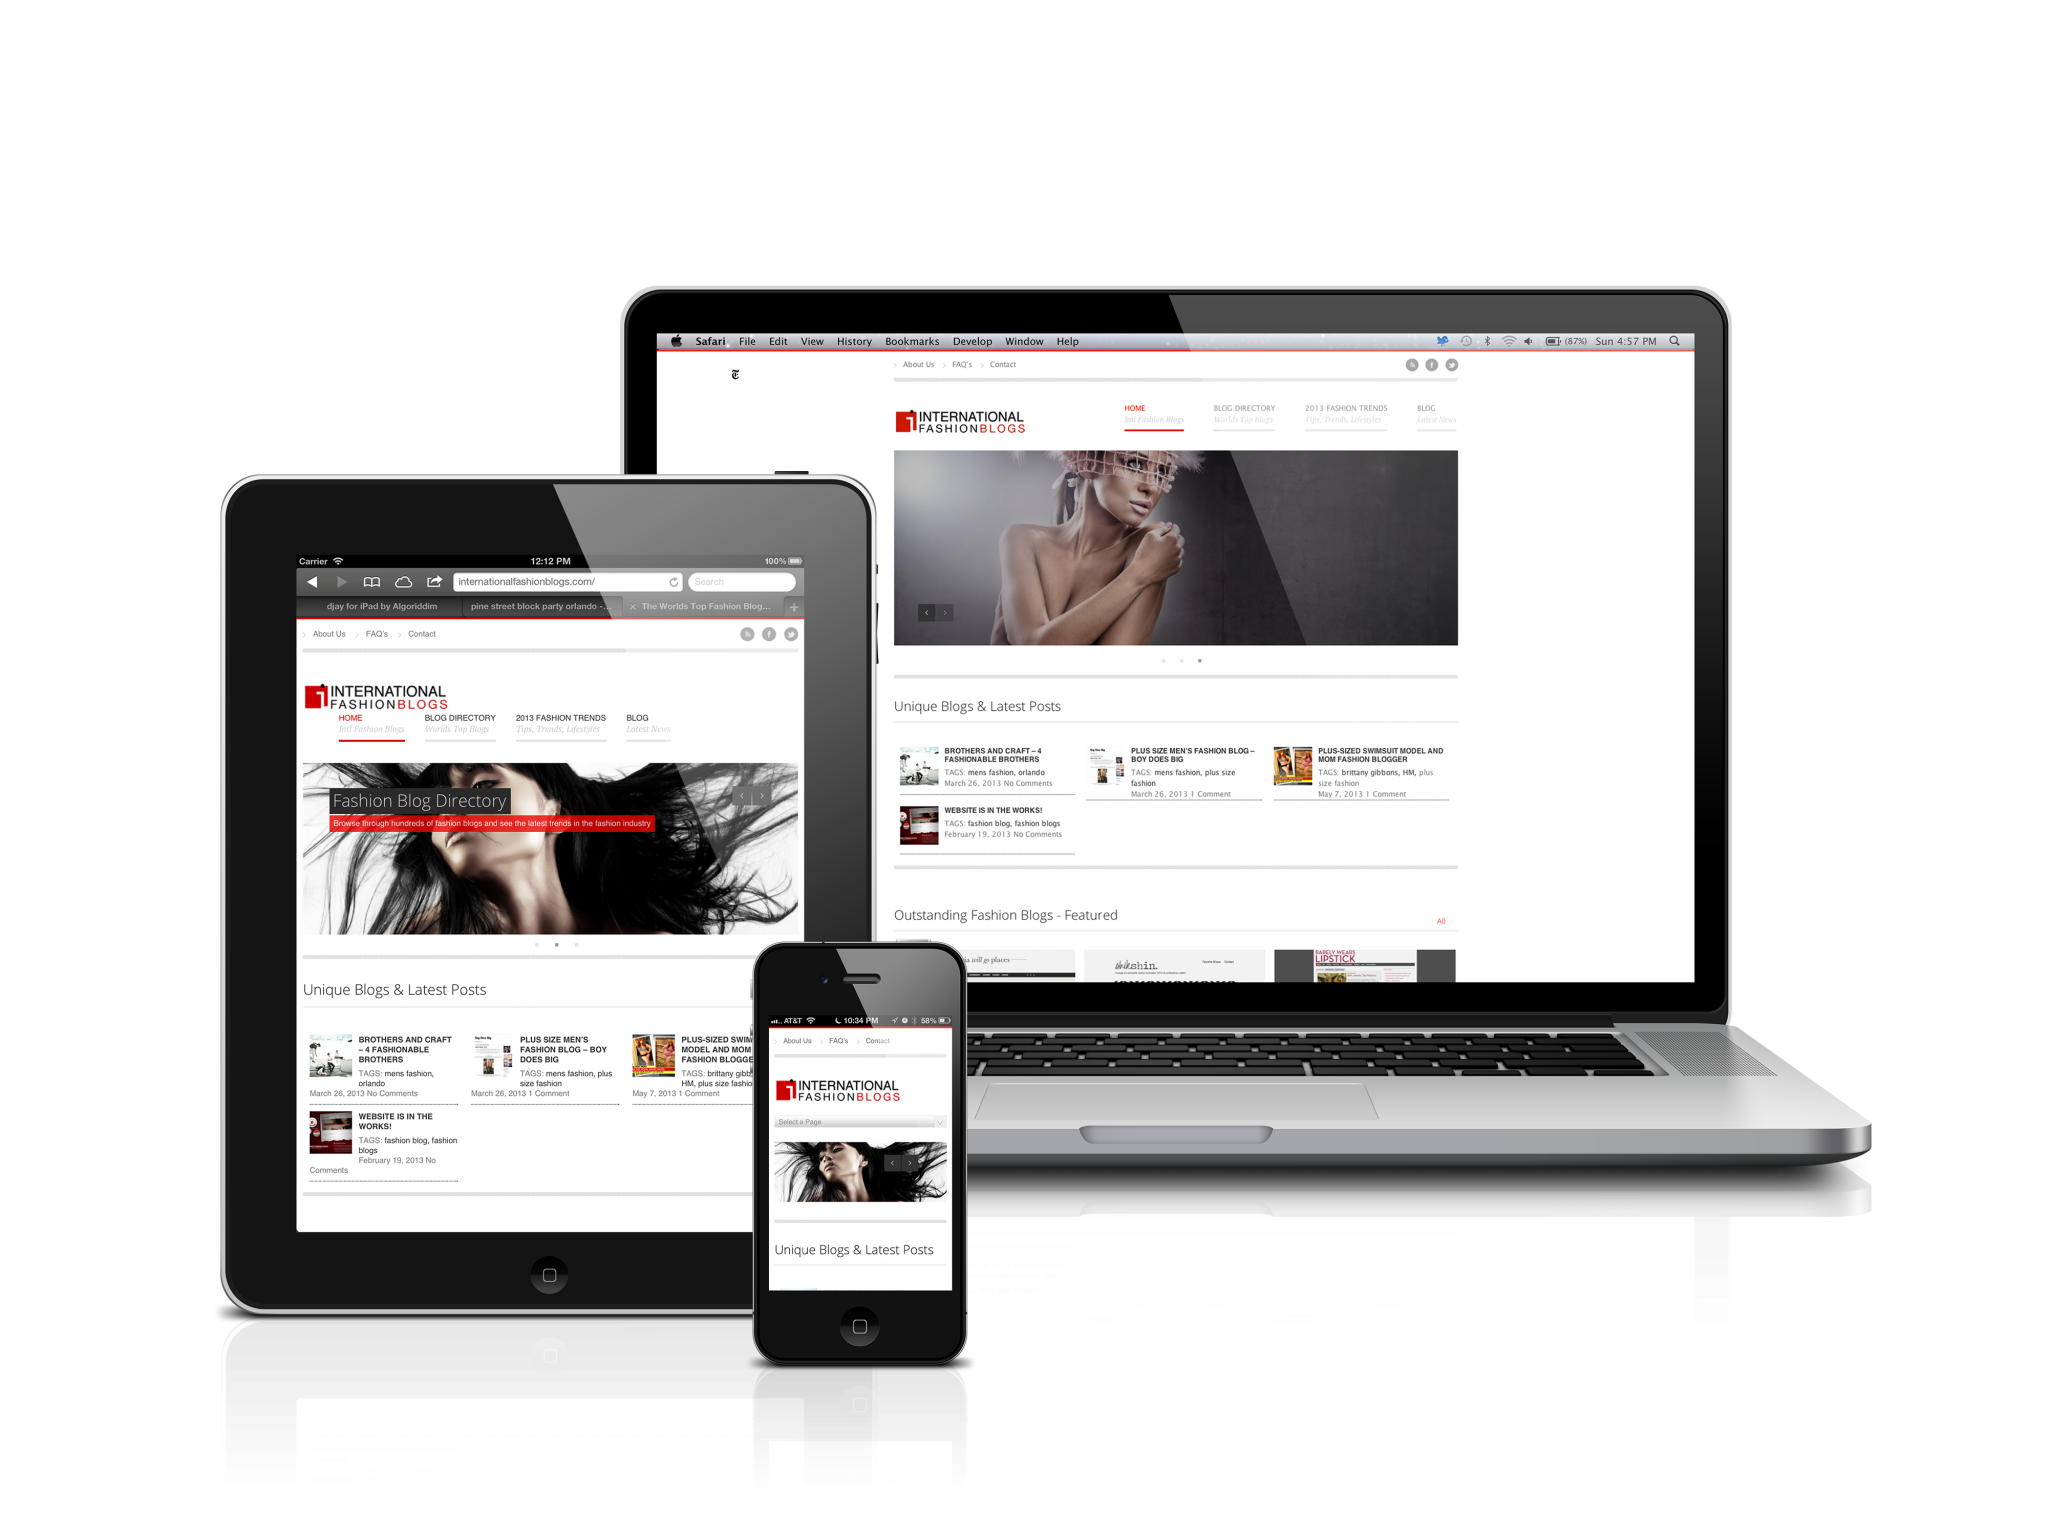 Responsive Web Design - One site seamlessly transitioning to many devices